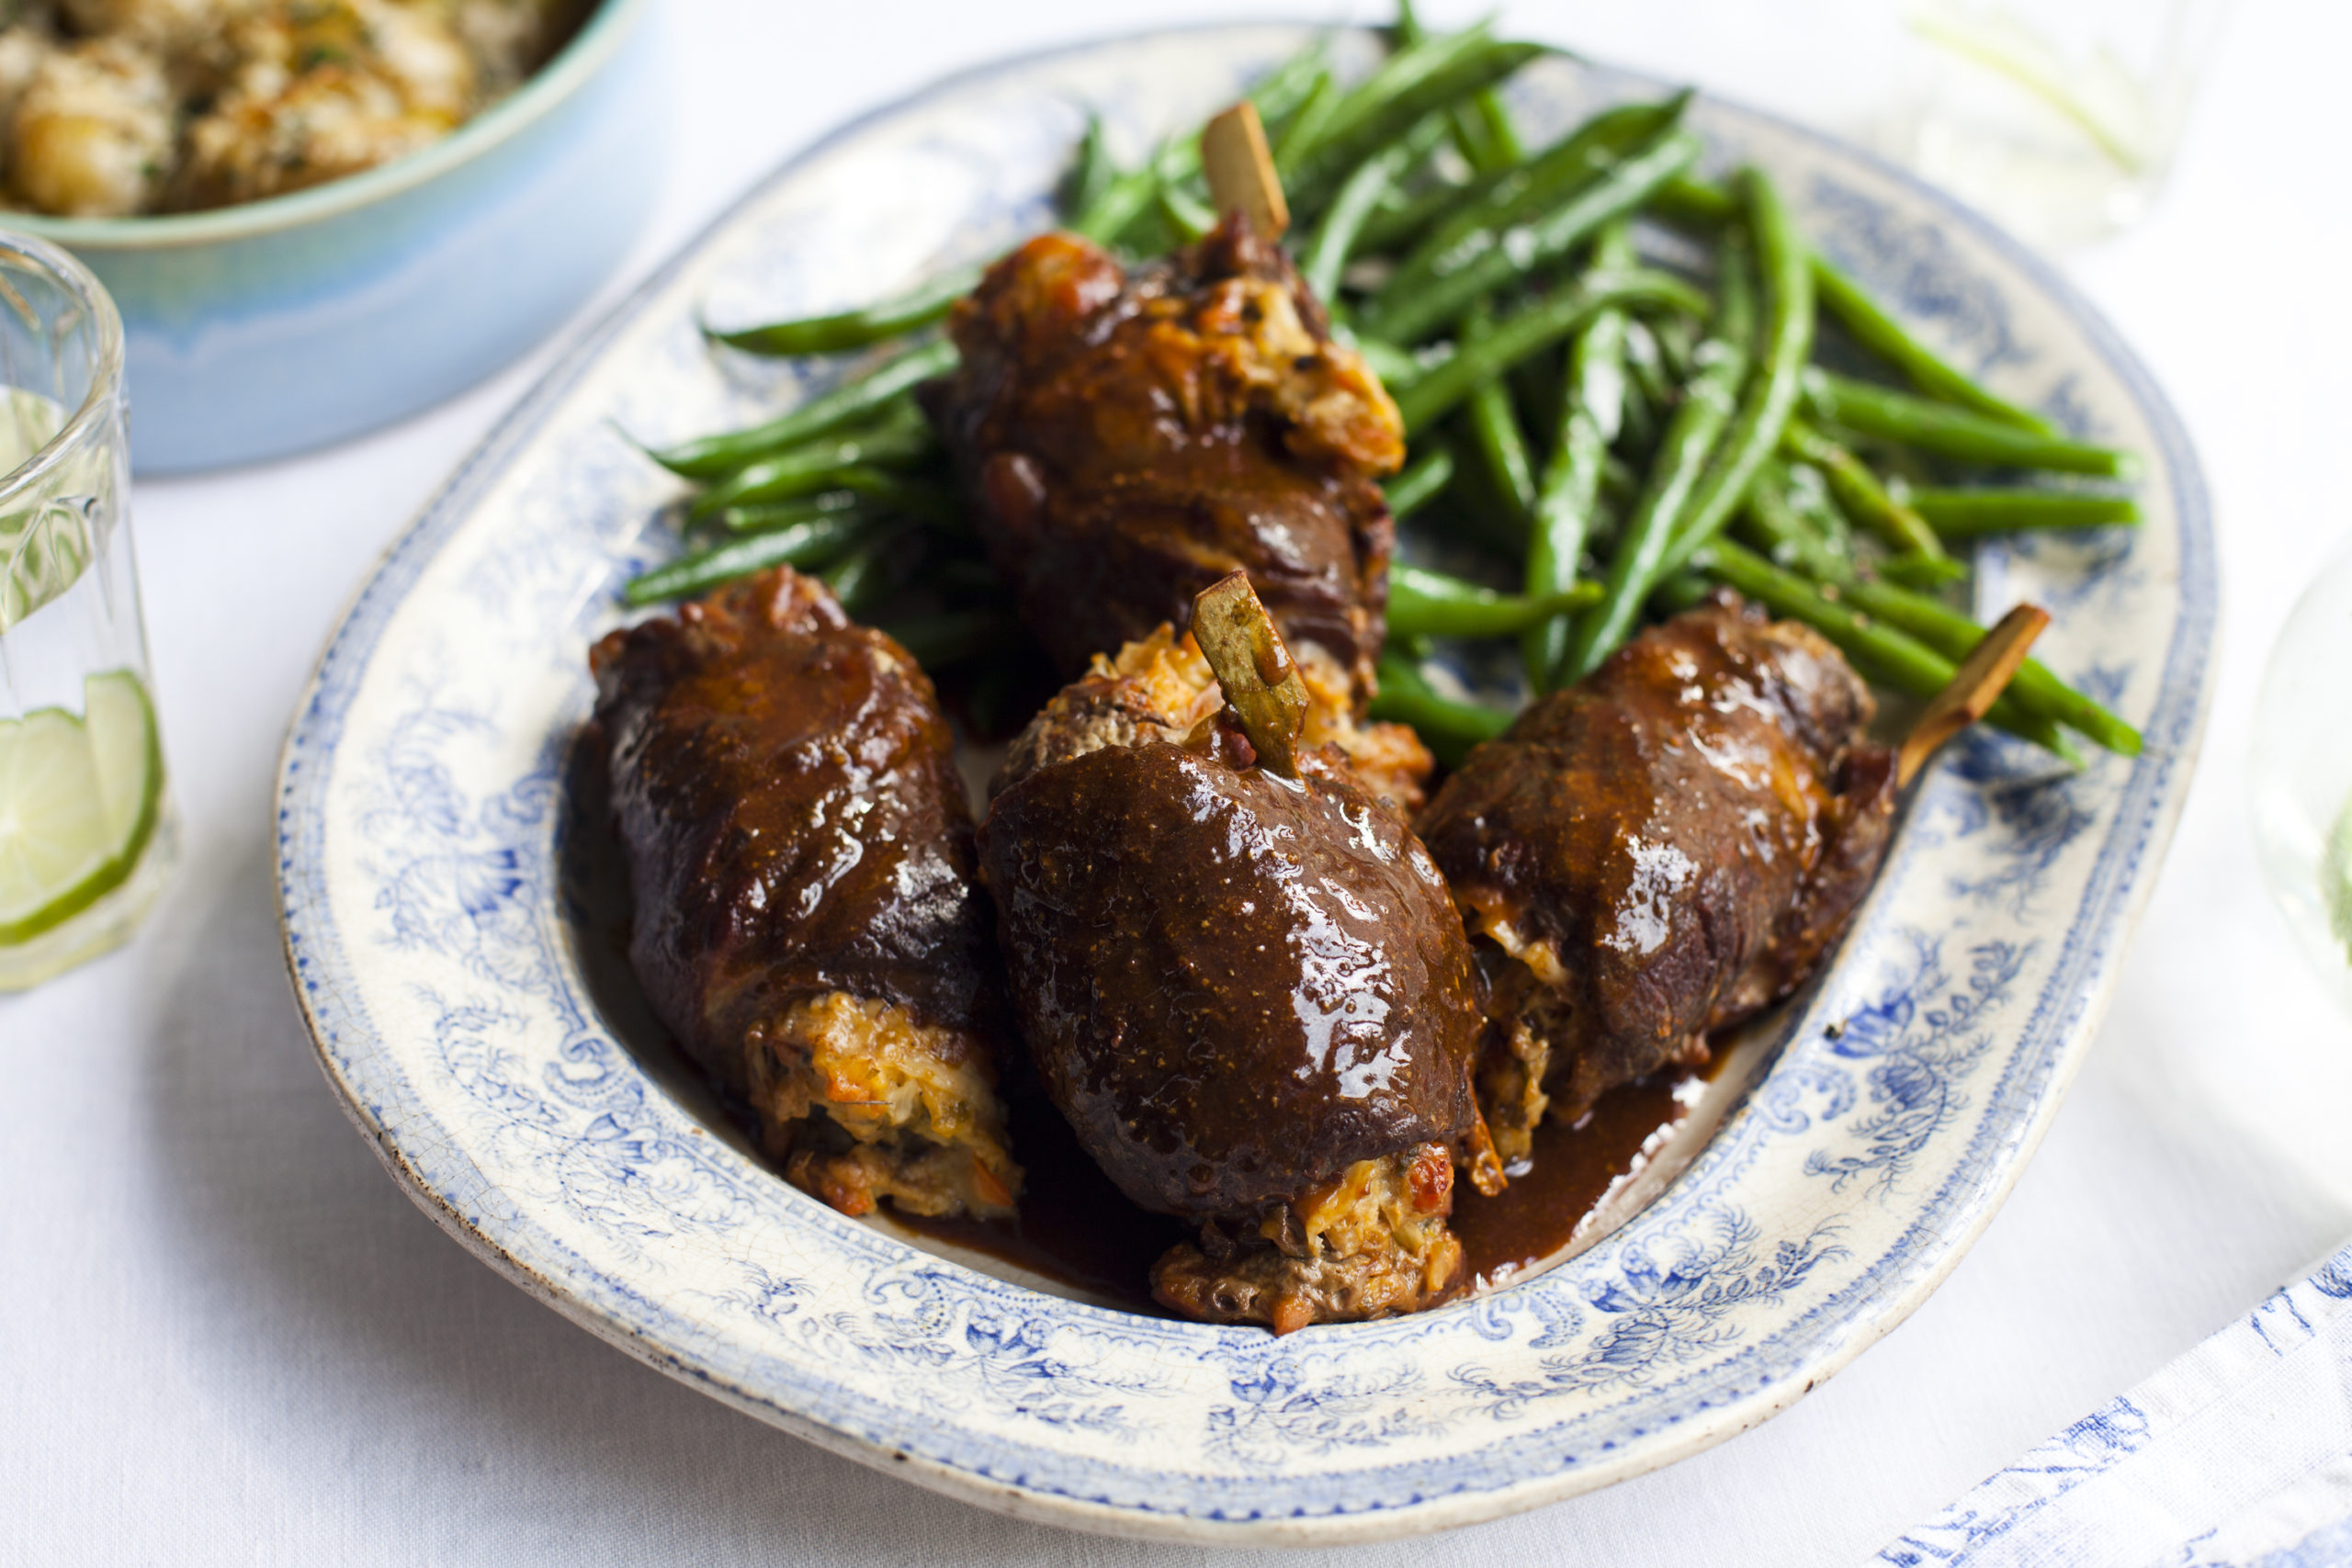 Roast Chicken with Chilli and Ginger